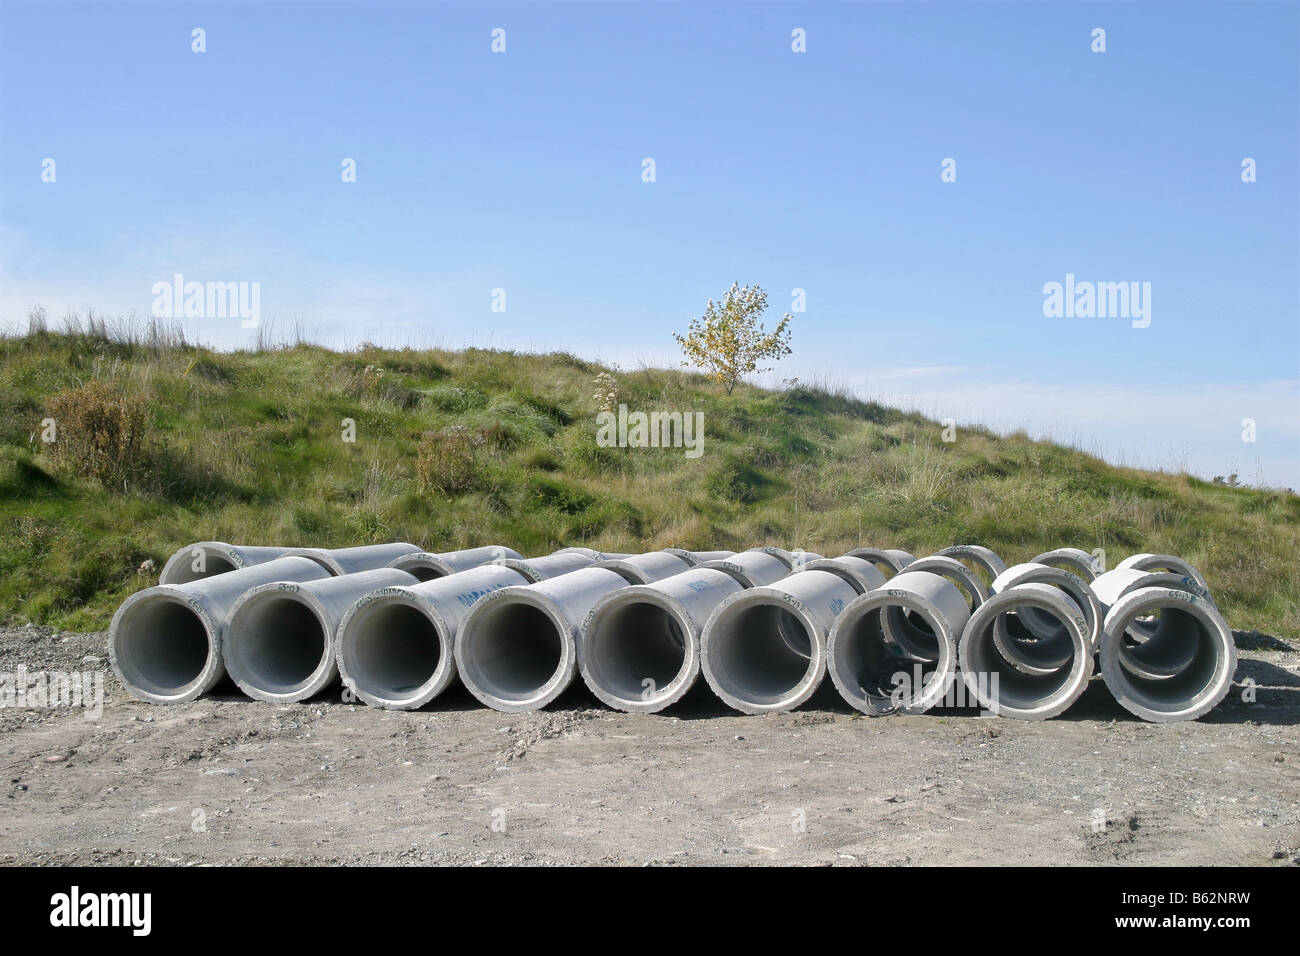 Pipe Culverts Stock Photos & Pipe Culverts Stock Images - Alamy